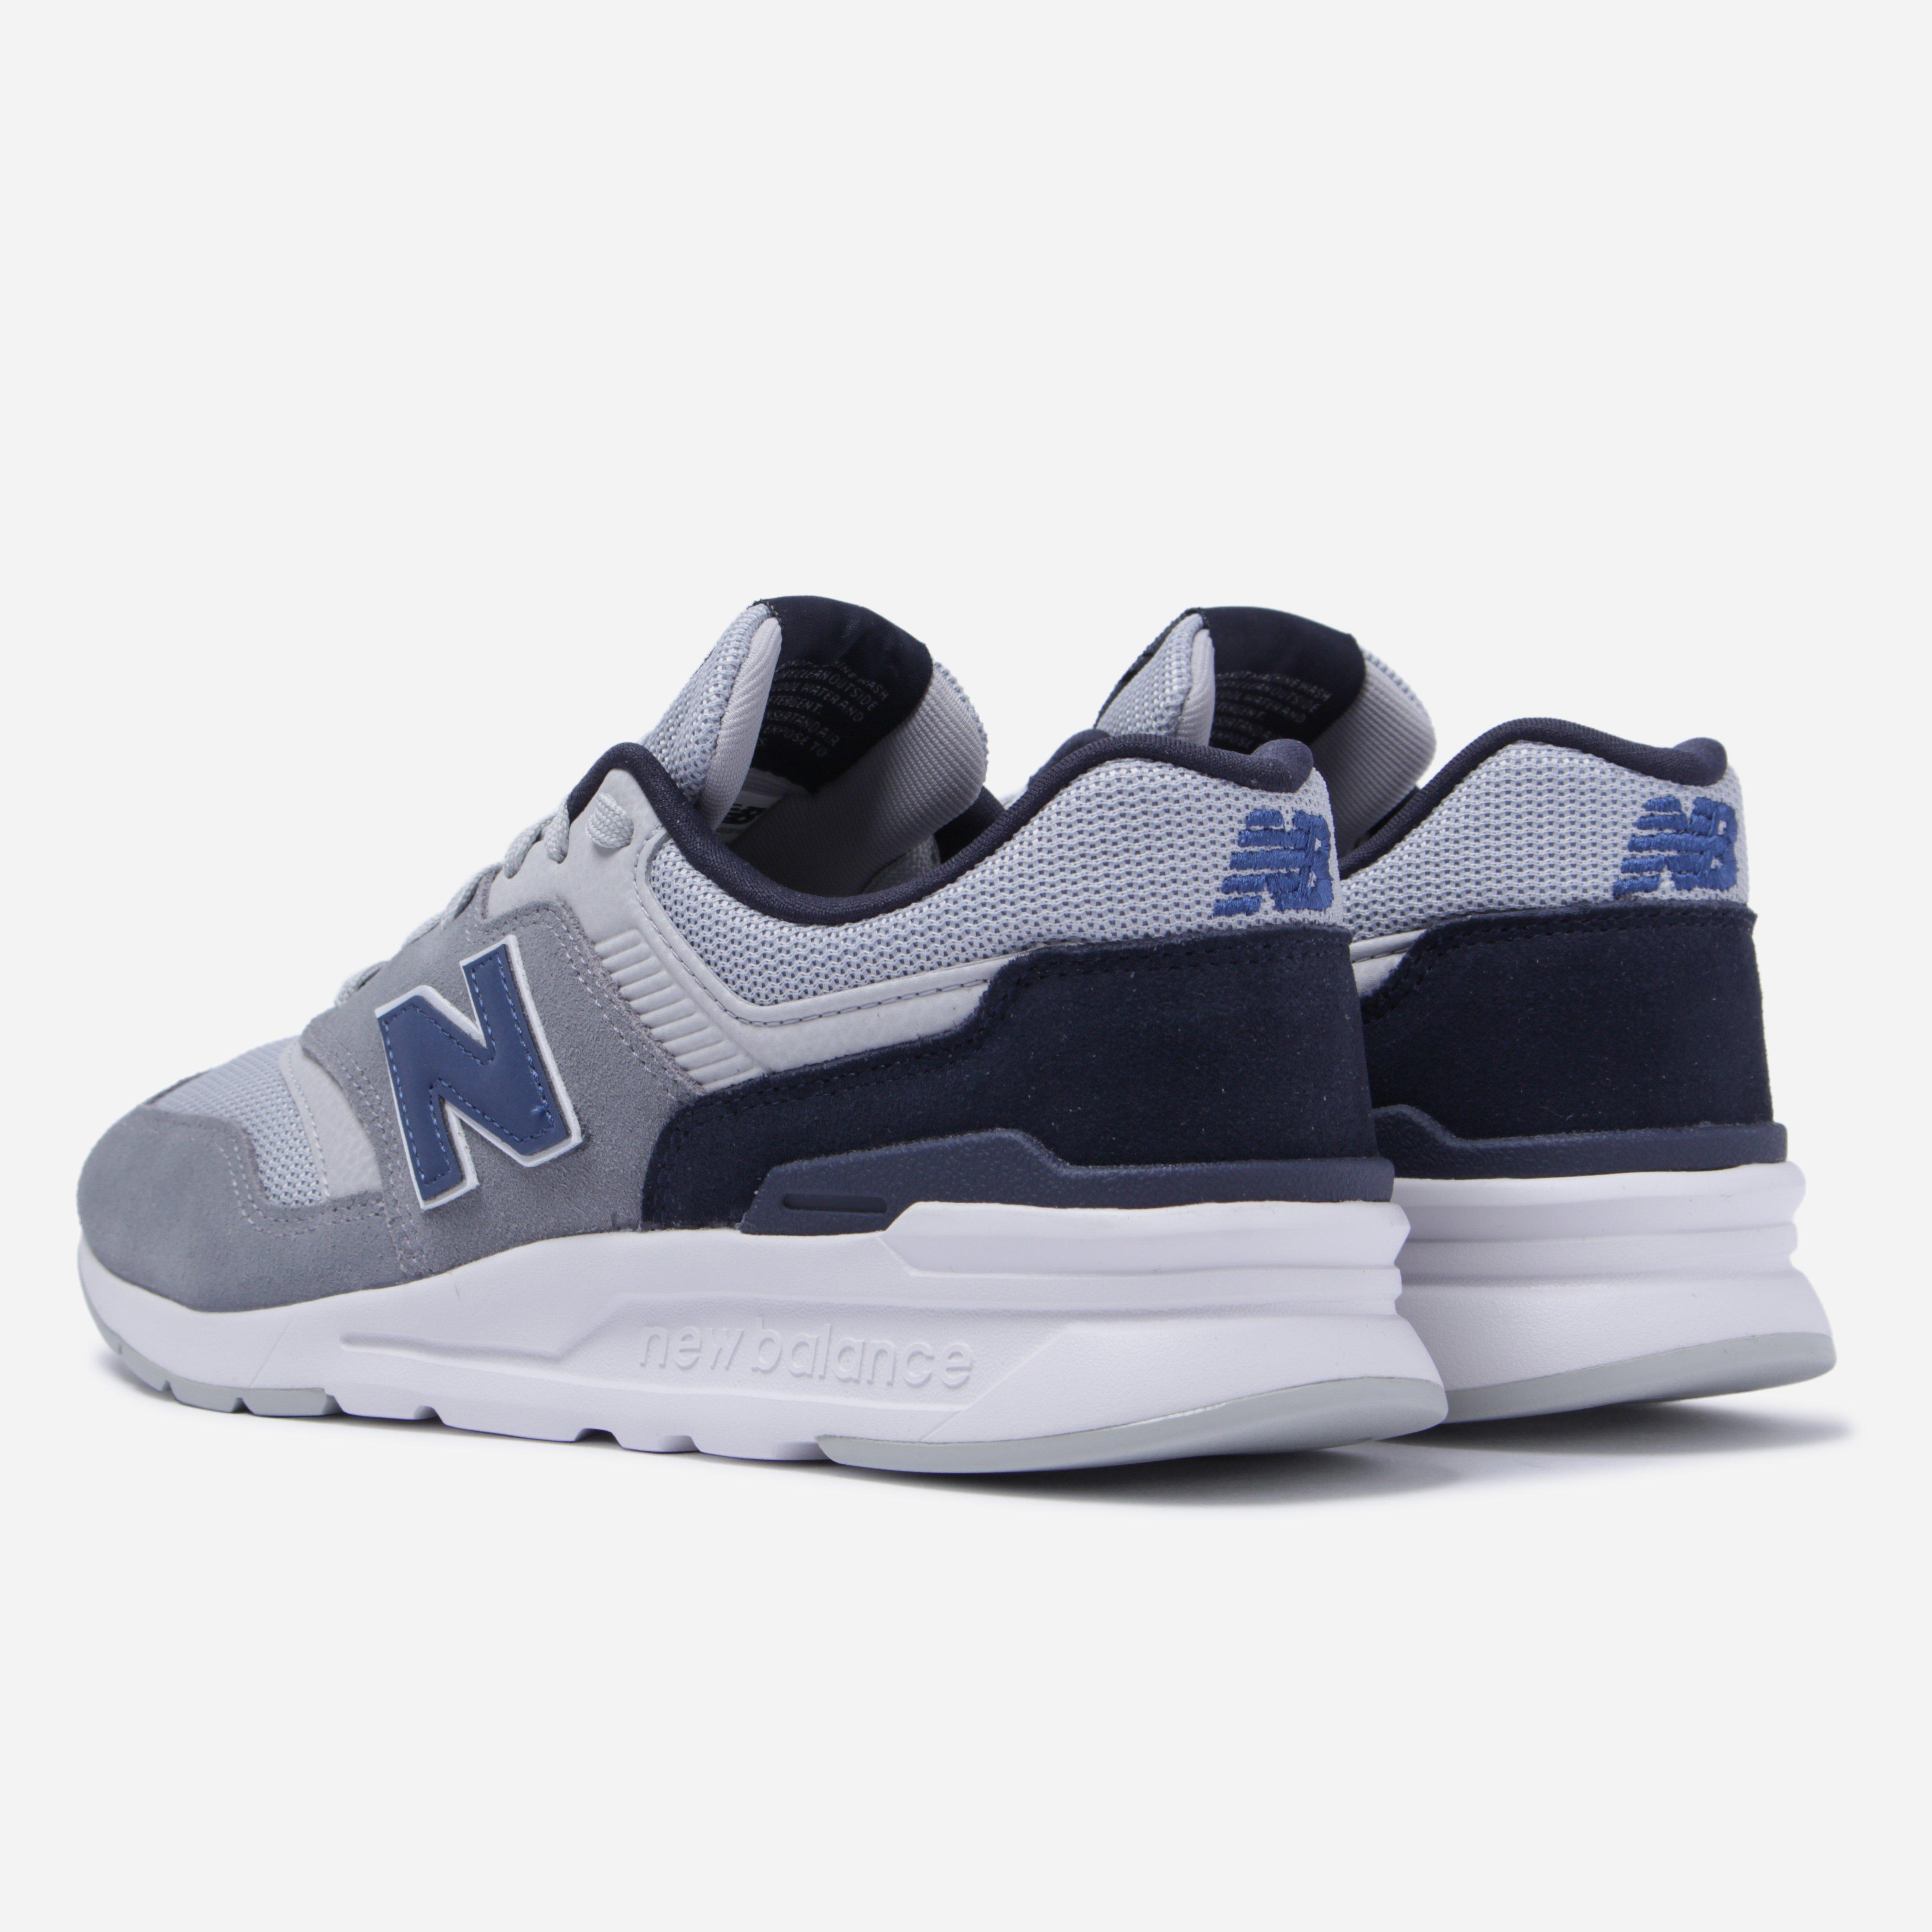 New Balance 997h in Grey (Gray) for Men - Lyst